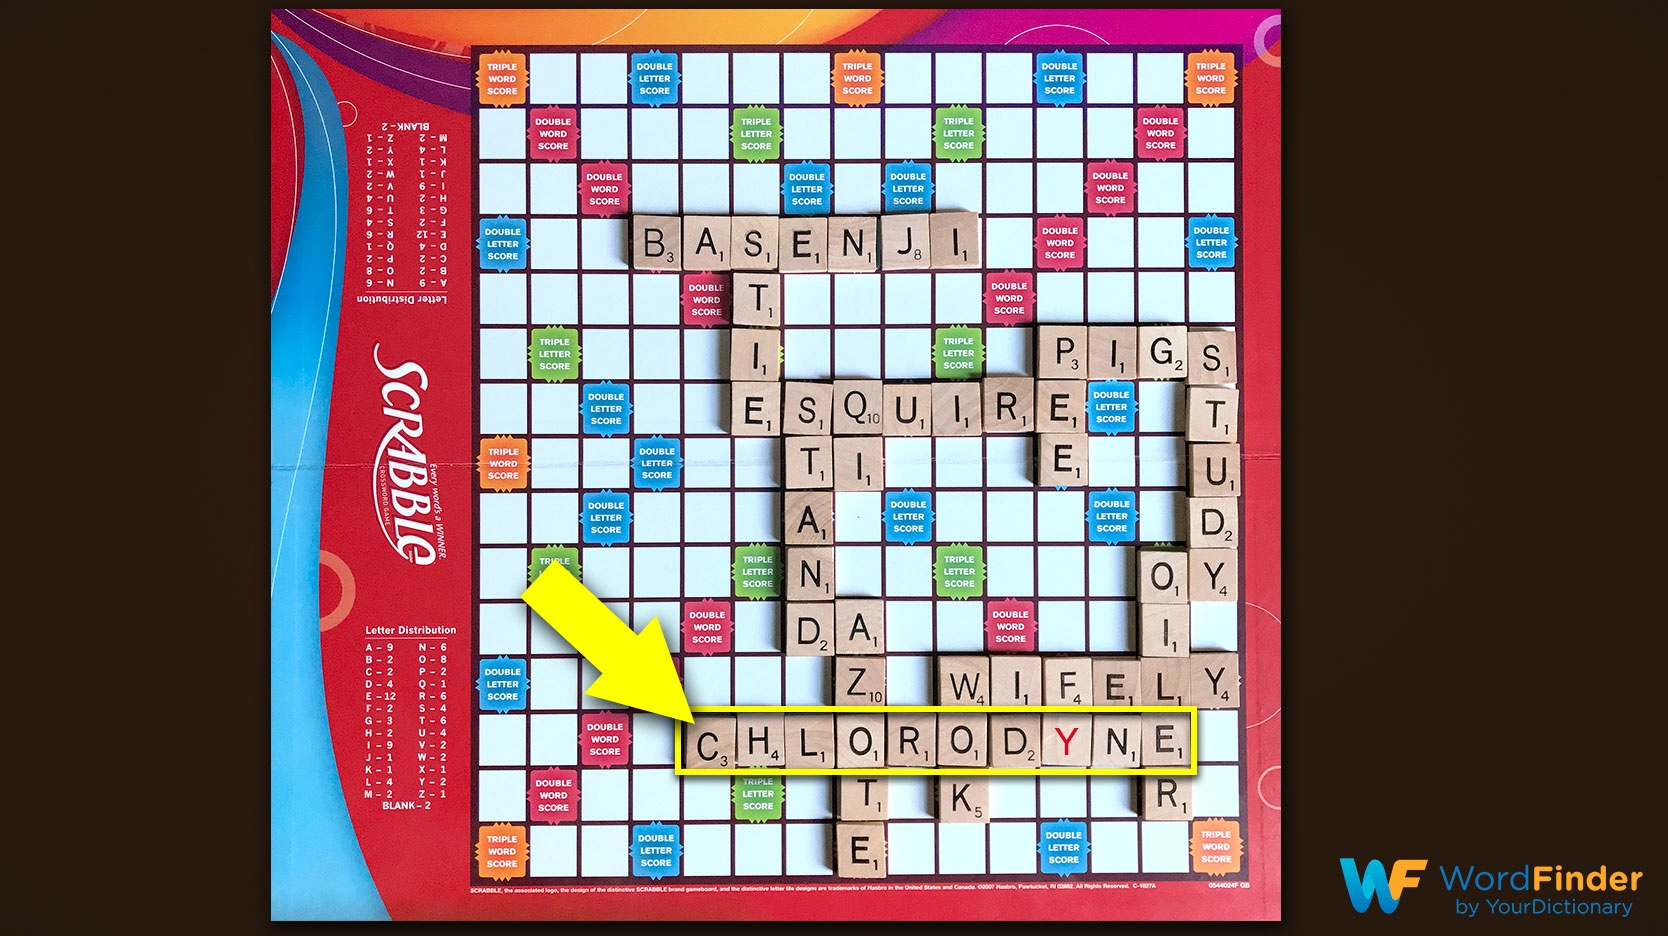 scrabble game play example nigel richards move